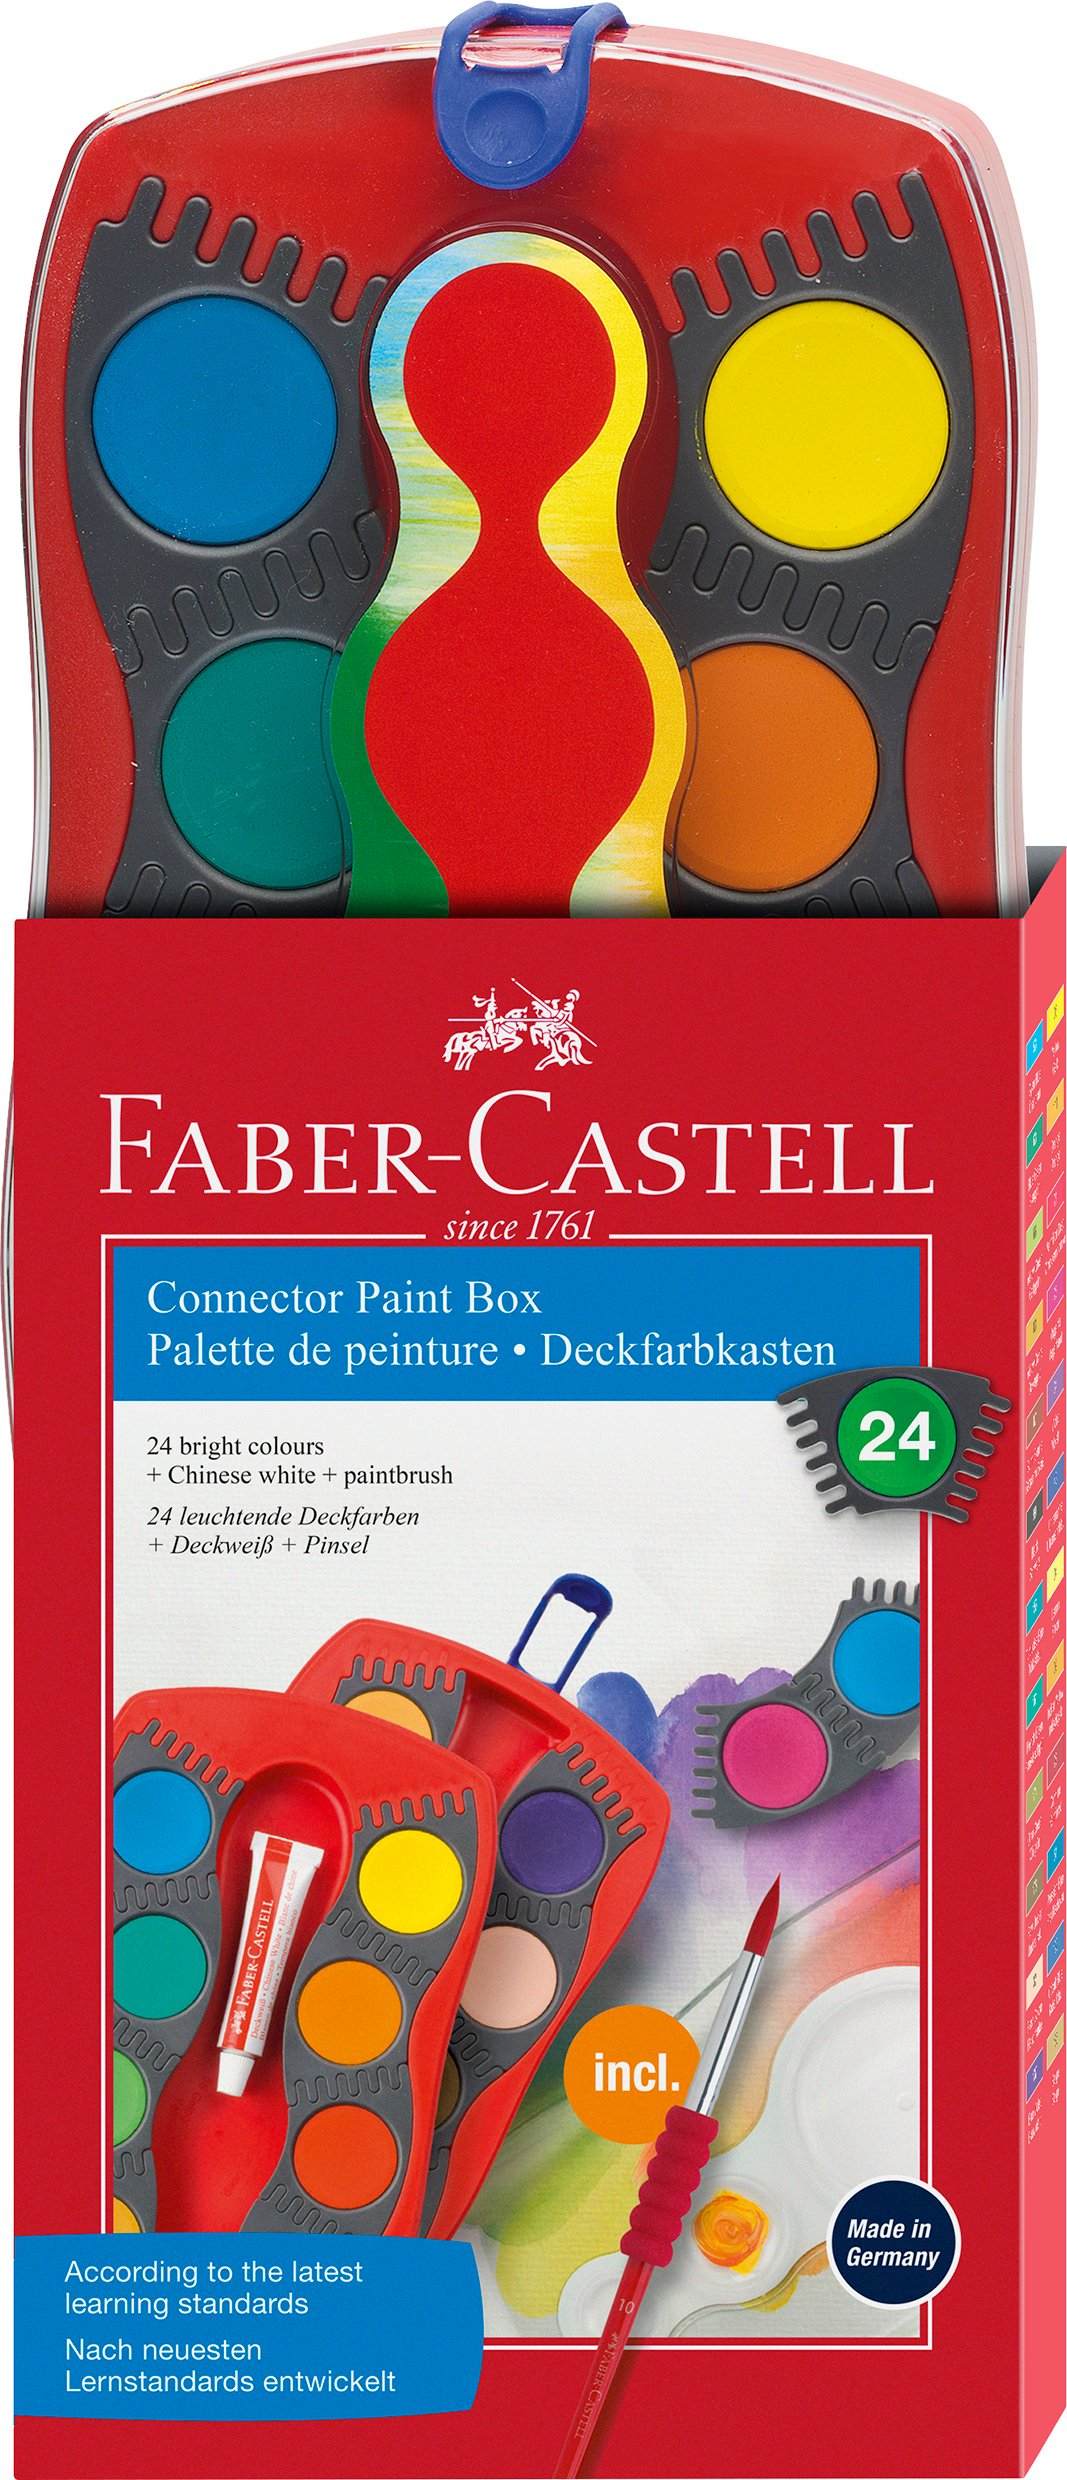 Faber-Castell - Connector Paint Box - 24 ct (125029)